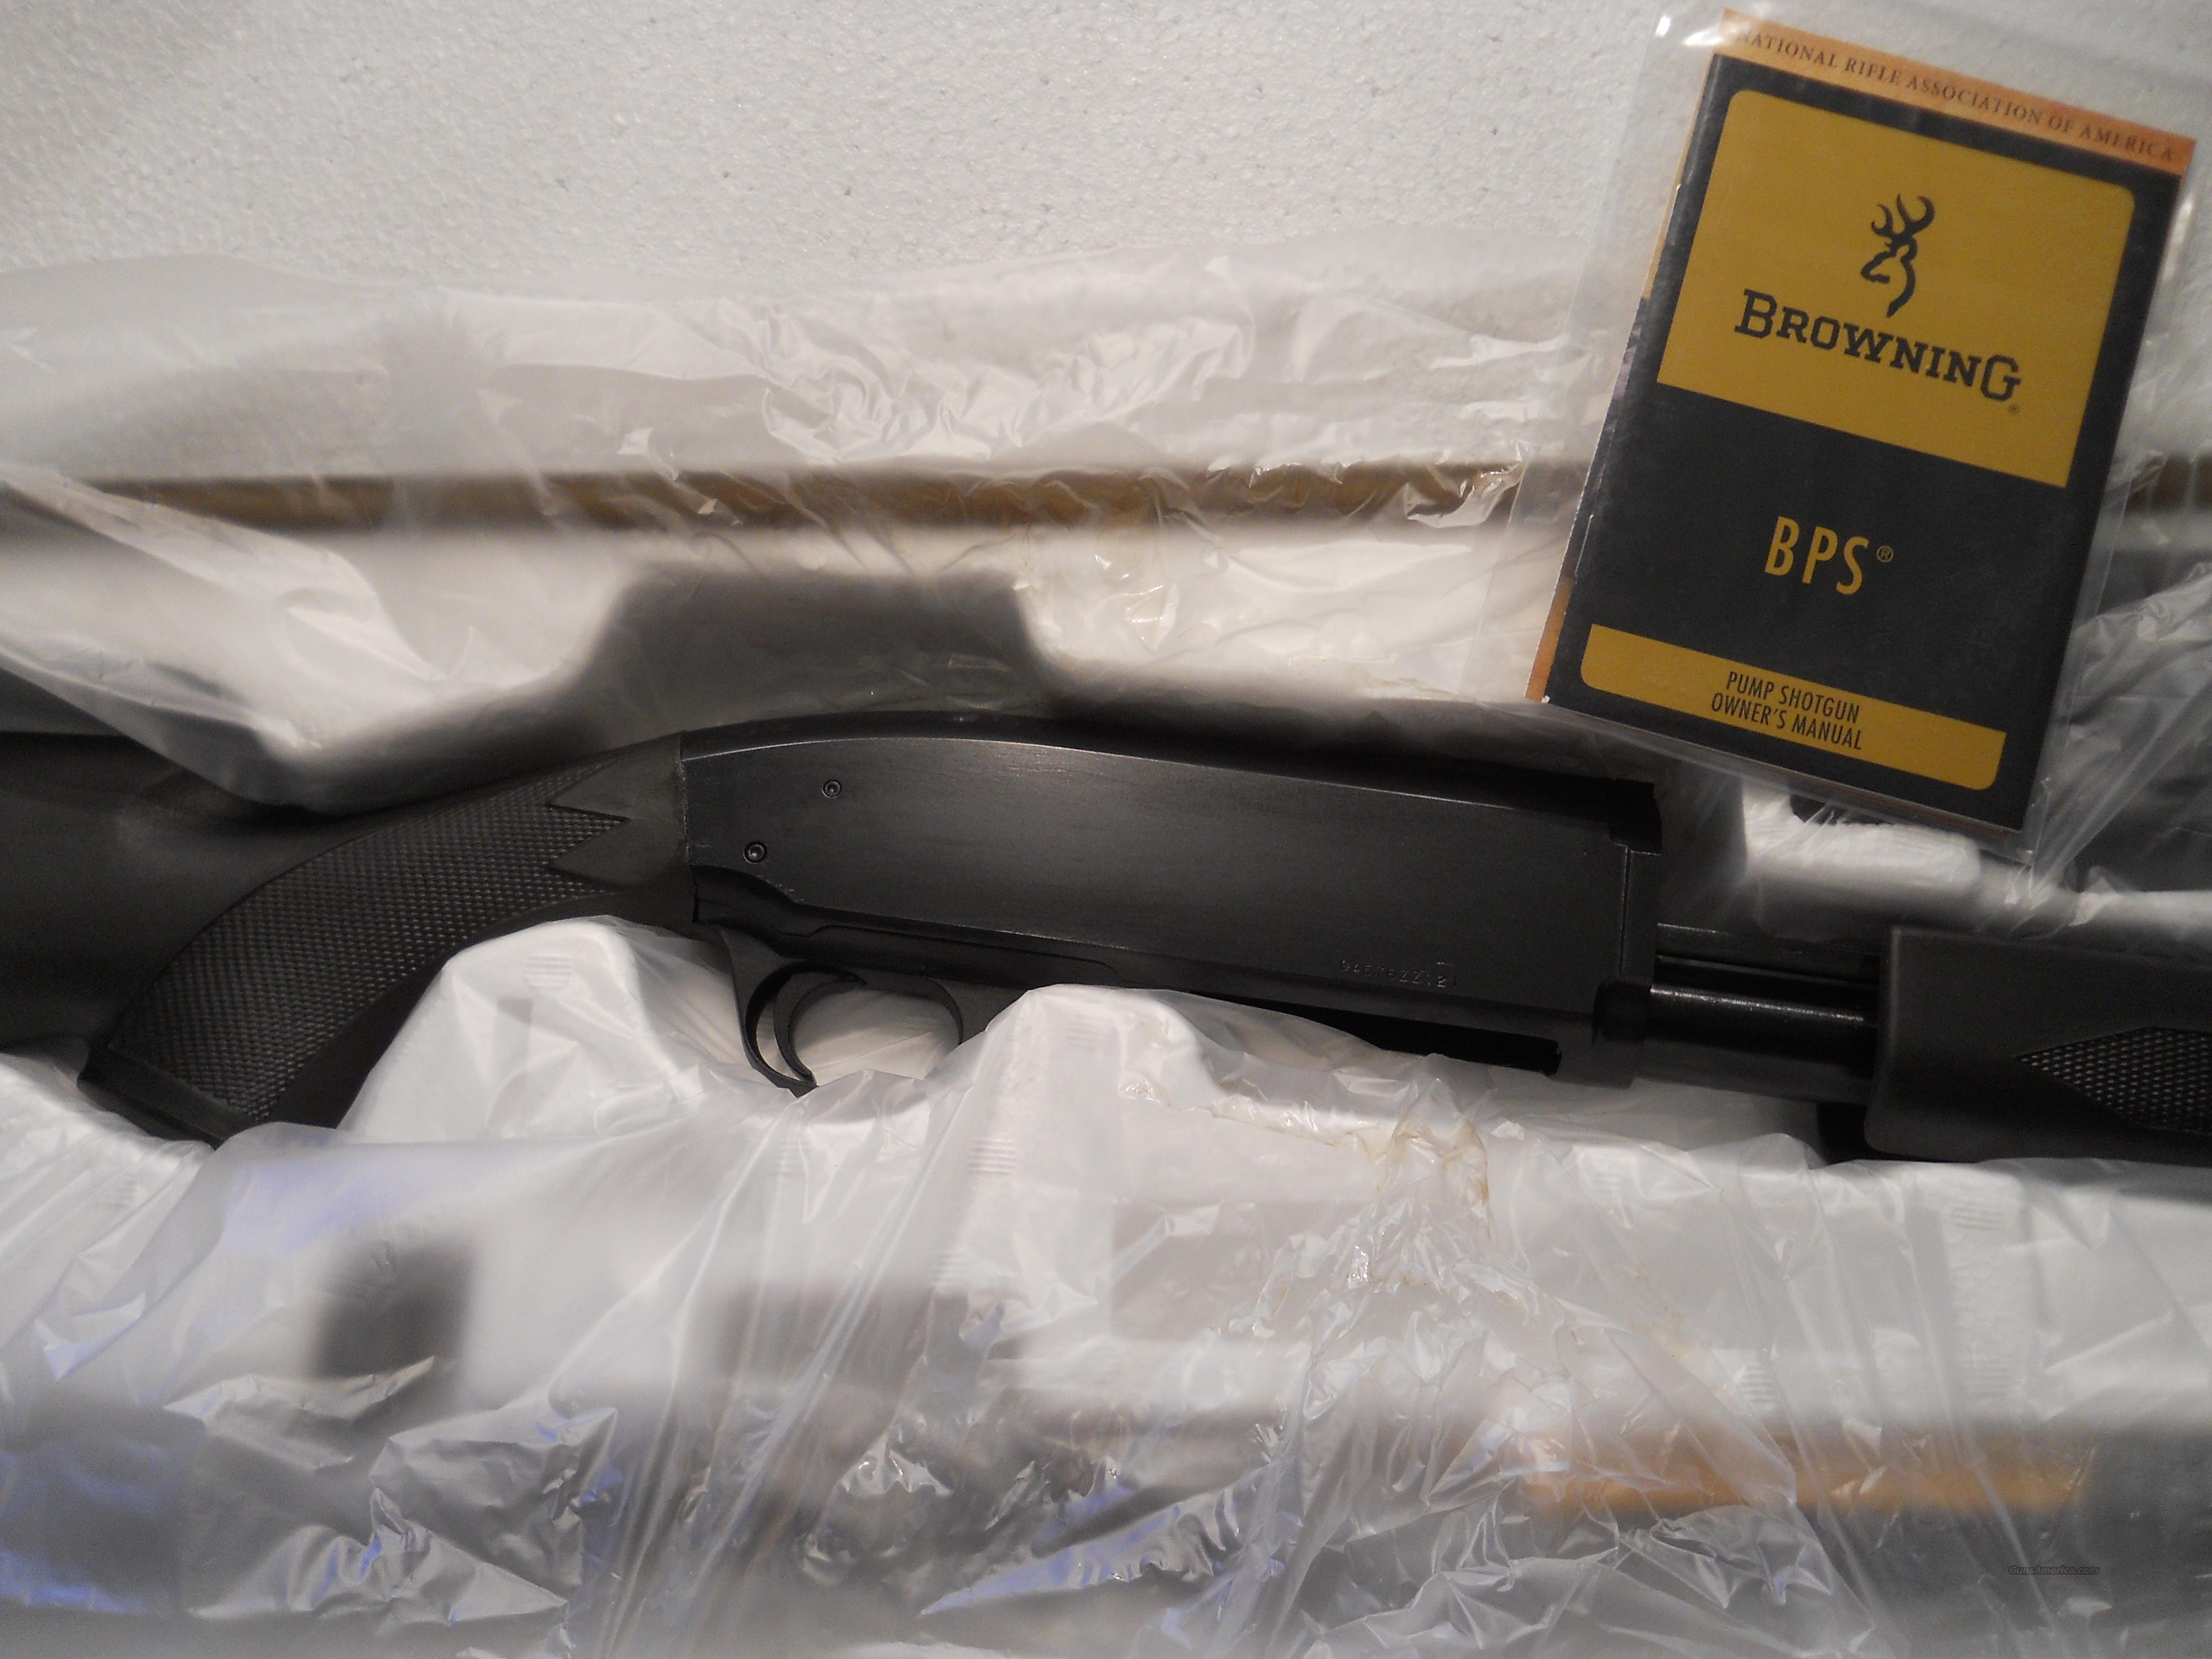 NIB!! BROWNING BPS STALKER .12 GA. PUMP SHOTGUN  Guns > Shotguns > Browning Shotguns > Pump Action > Hunting